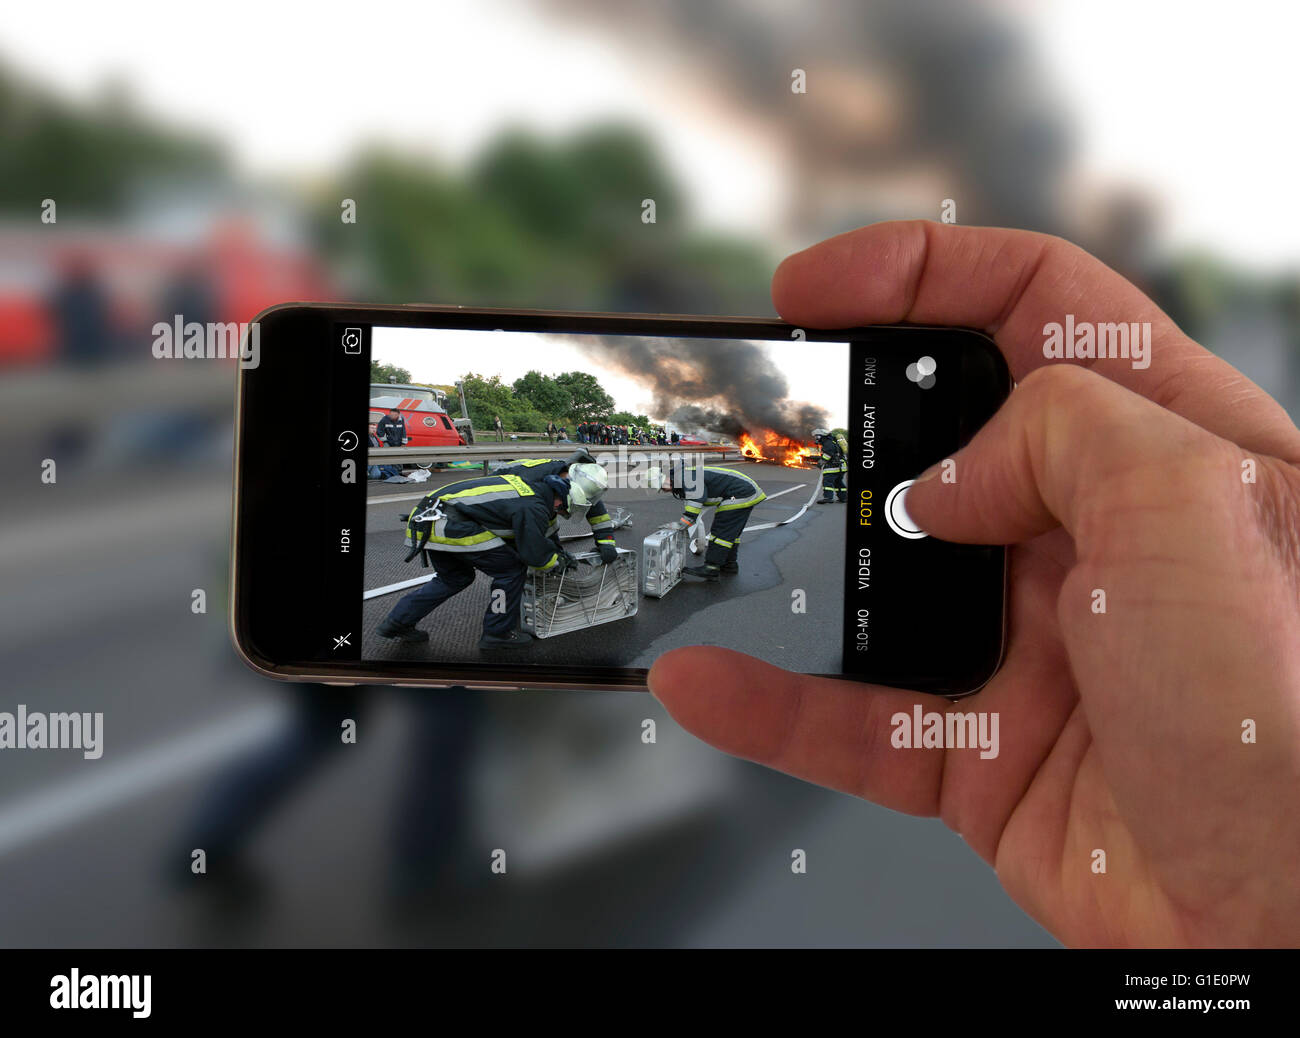 Onlookers take picture with a mobile phone camera, of an accident, symbolic image, photomontage, photo composition, - Stock Image